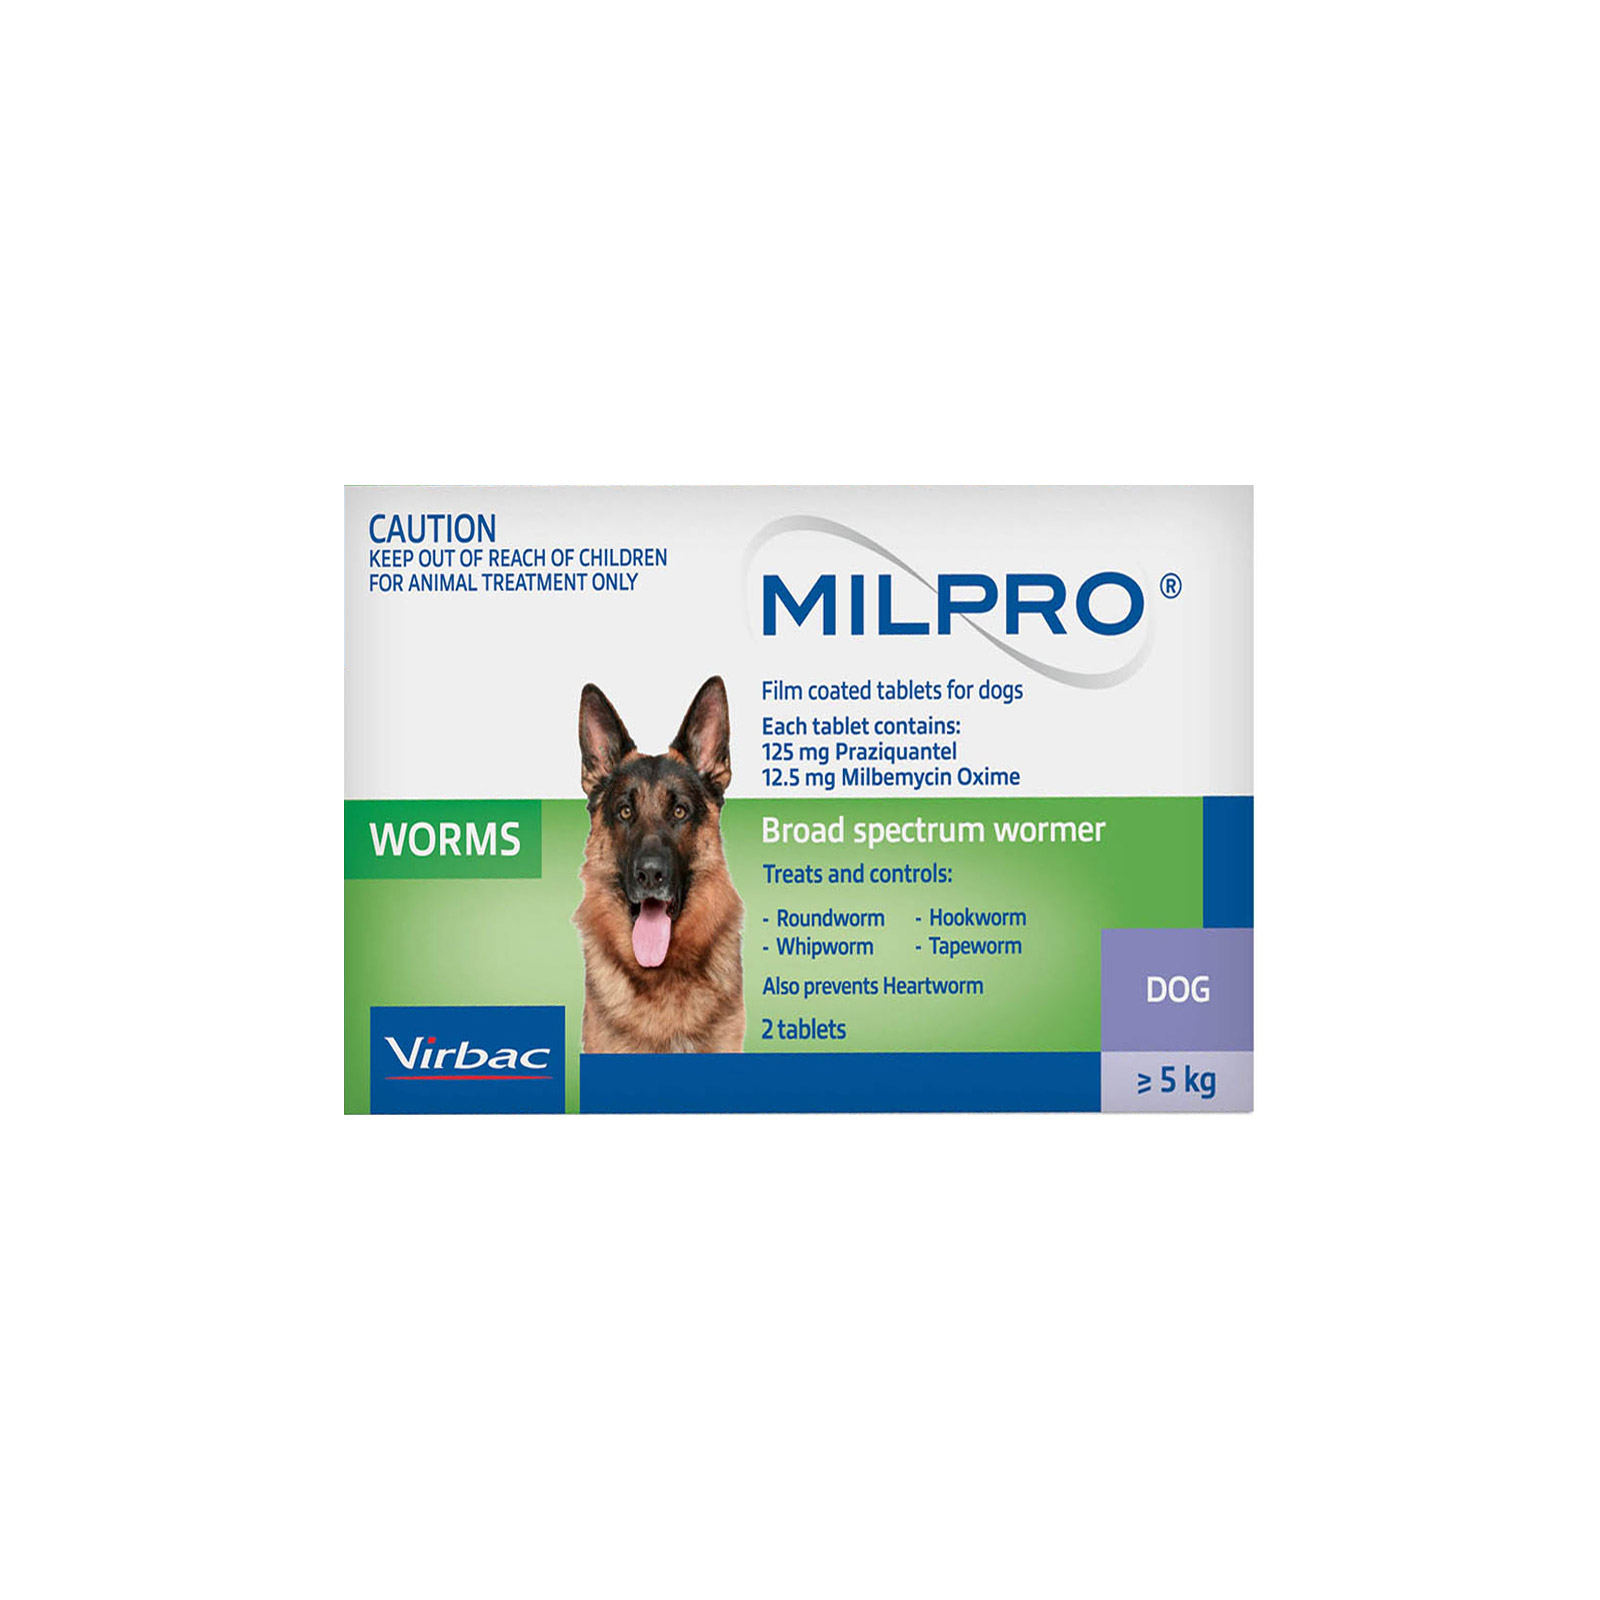 636982179392125030Milpro-Broad-Spectrum-Wormer-For-Dogs-Over-5kg-2-Tablets.jpg